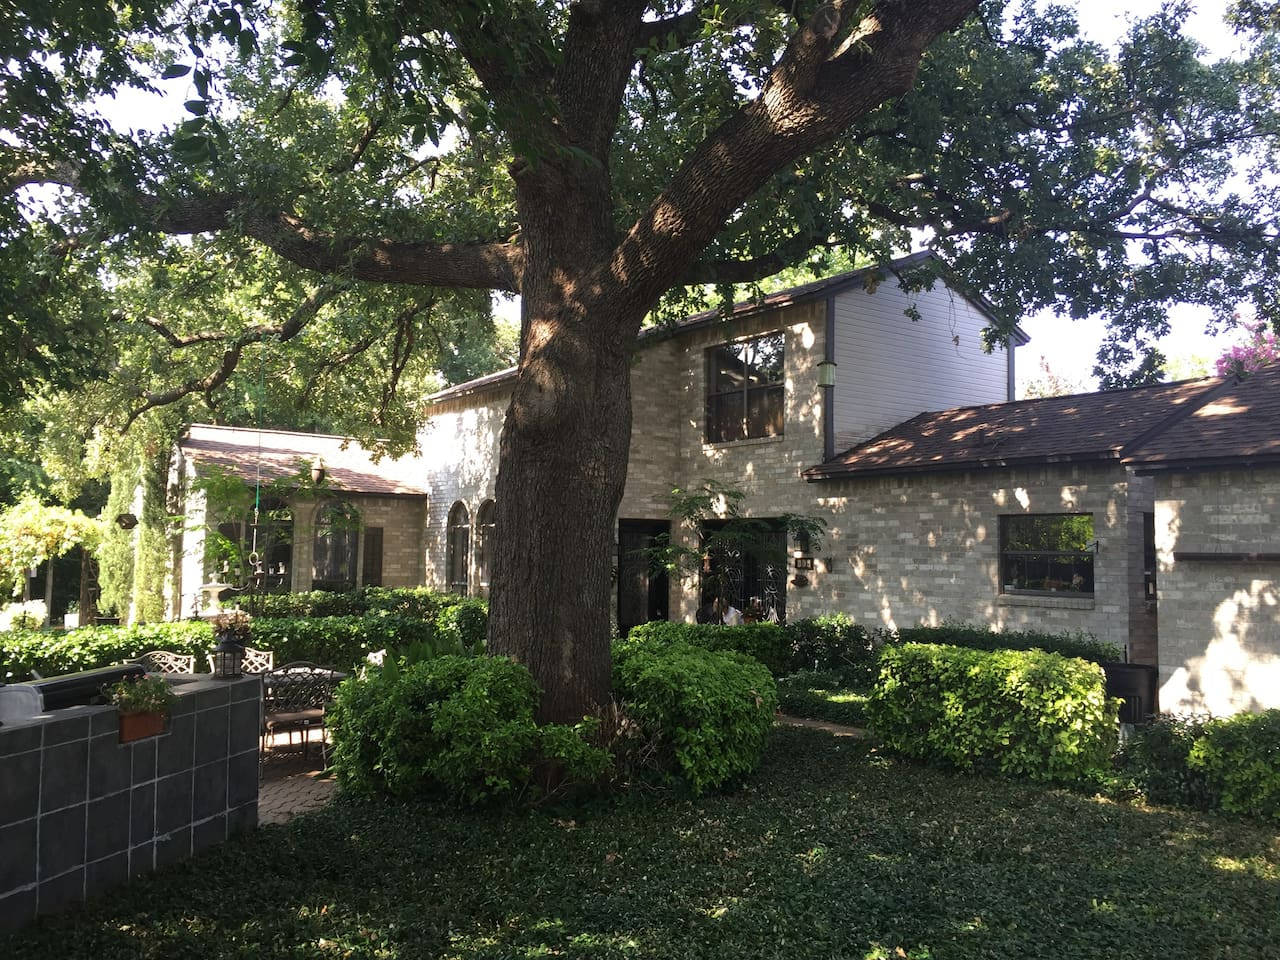 The Charleston style home was constructed with respect for the roots of this enormous oak tree.